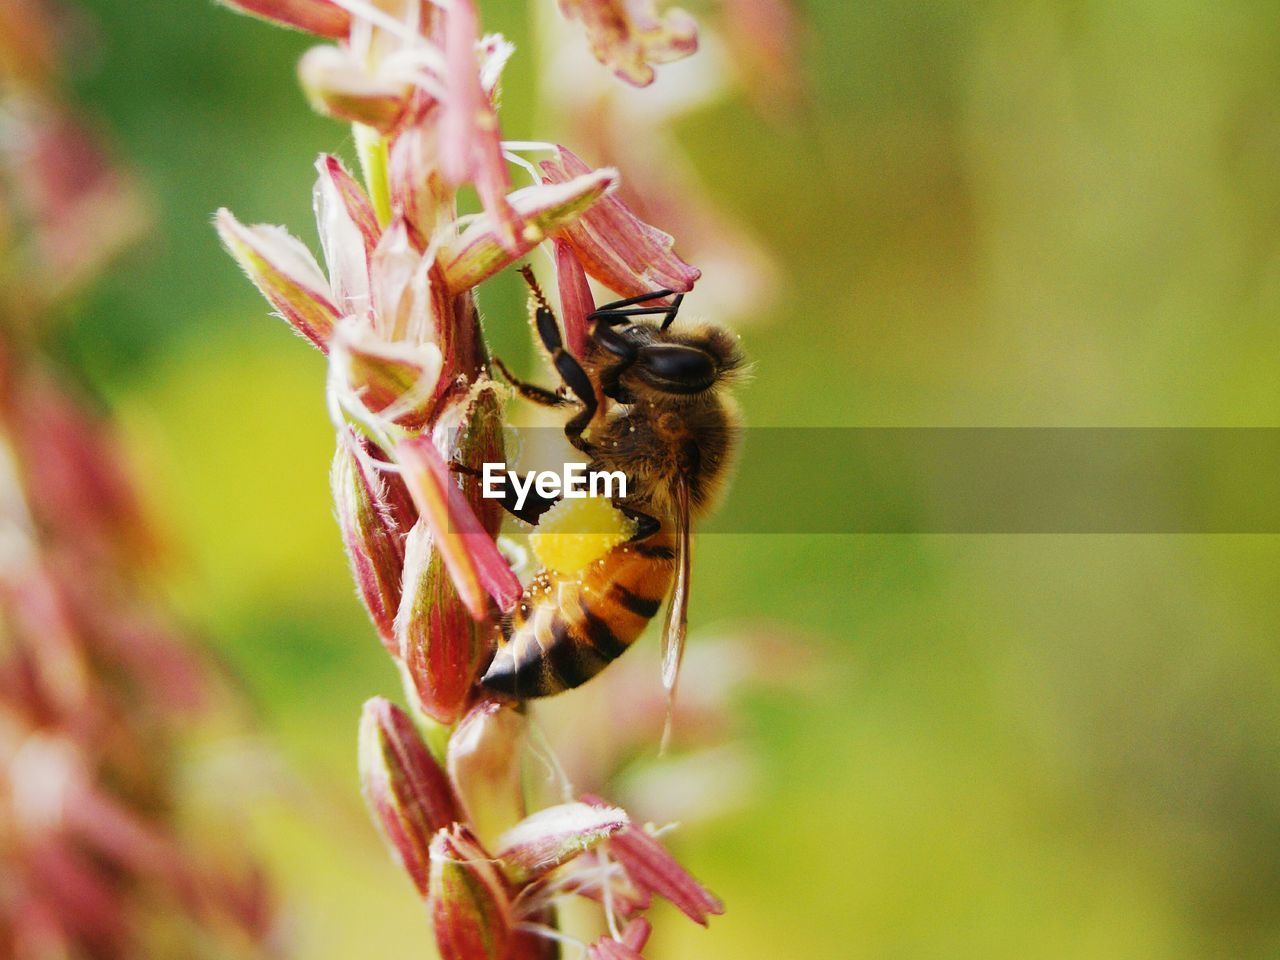 insect, one animal, animal themes, animals in the wild, nature, no people, growth, close-up, outdoors, beauty in nature, animal wildlife, day, plant, focus on foreground, bee, flower, pollination, fragility, freshness